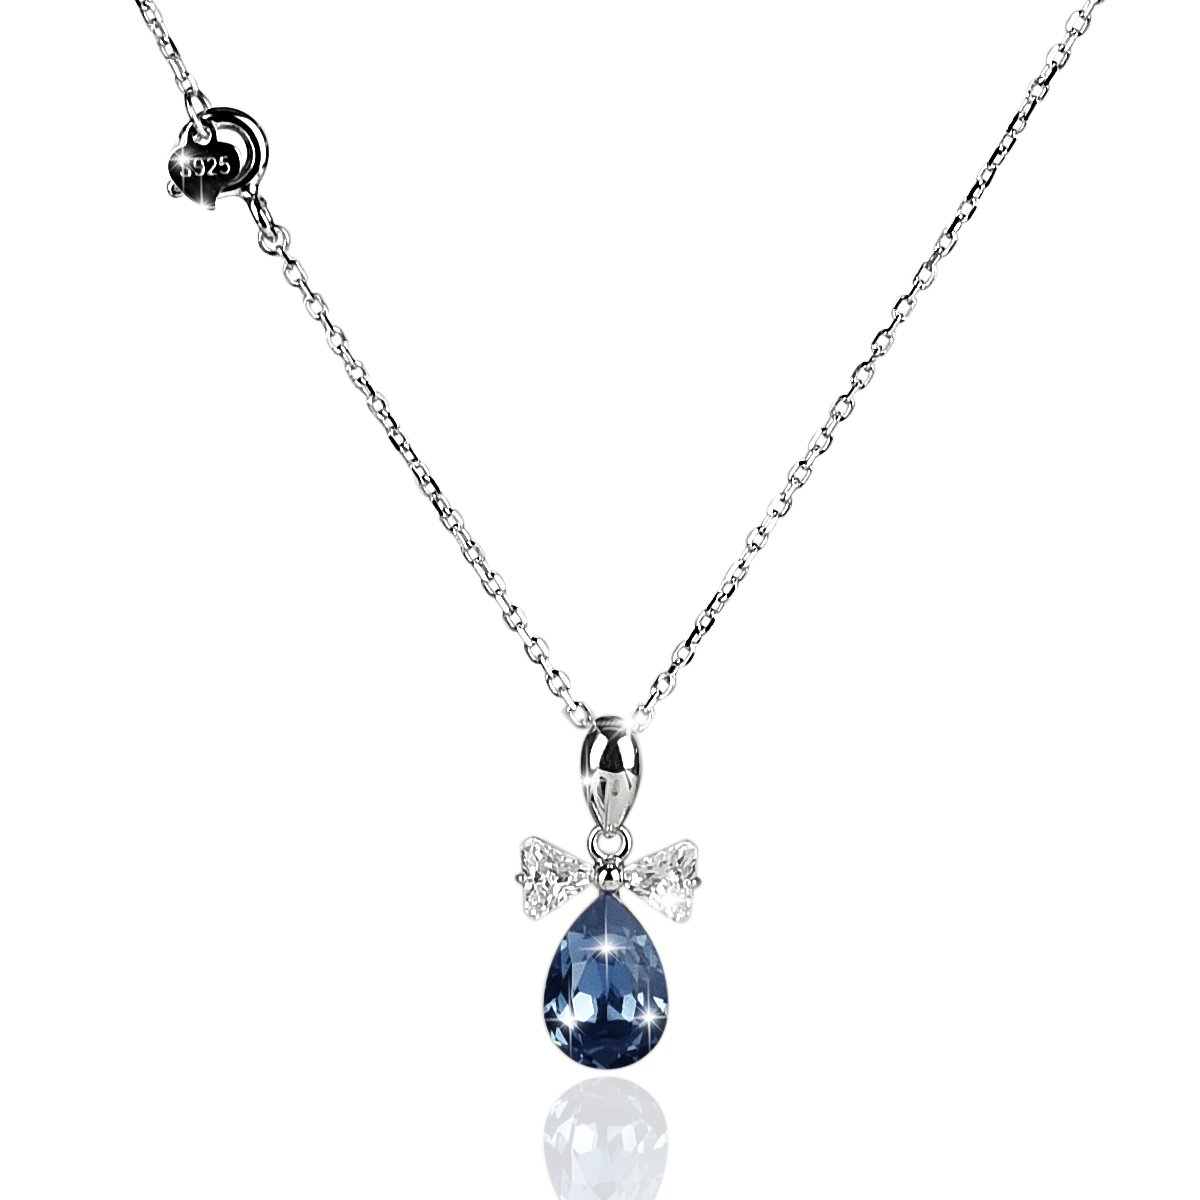 DONGZHOU 925 Sterling Silver Artifical Crystal Bow-Knot Teardrop Pendant Necklace Mothers Day Gift